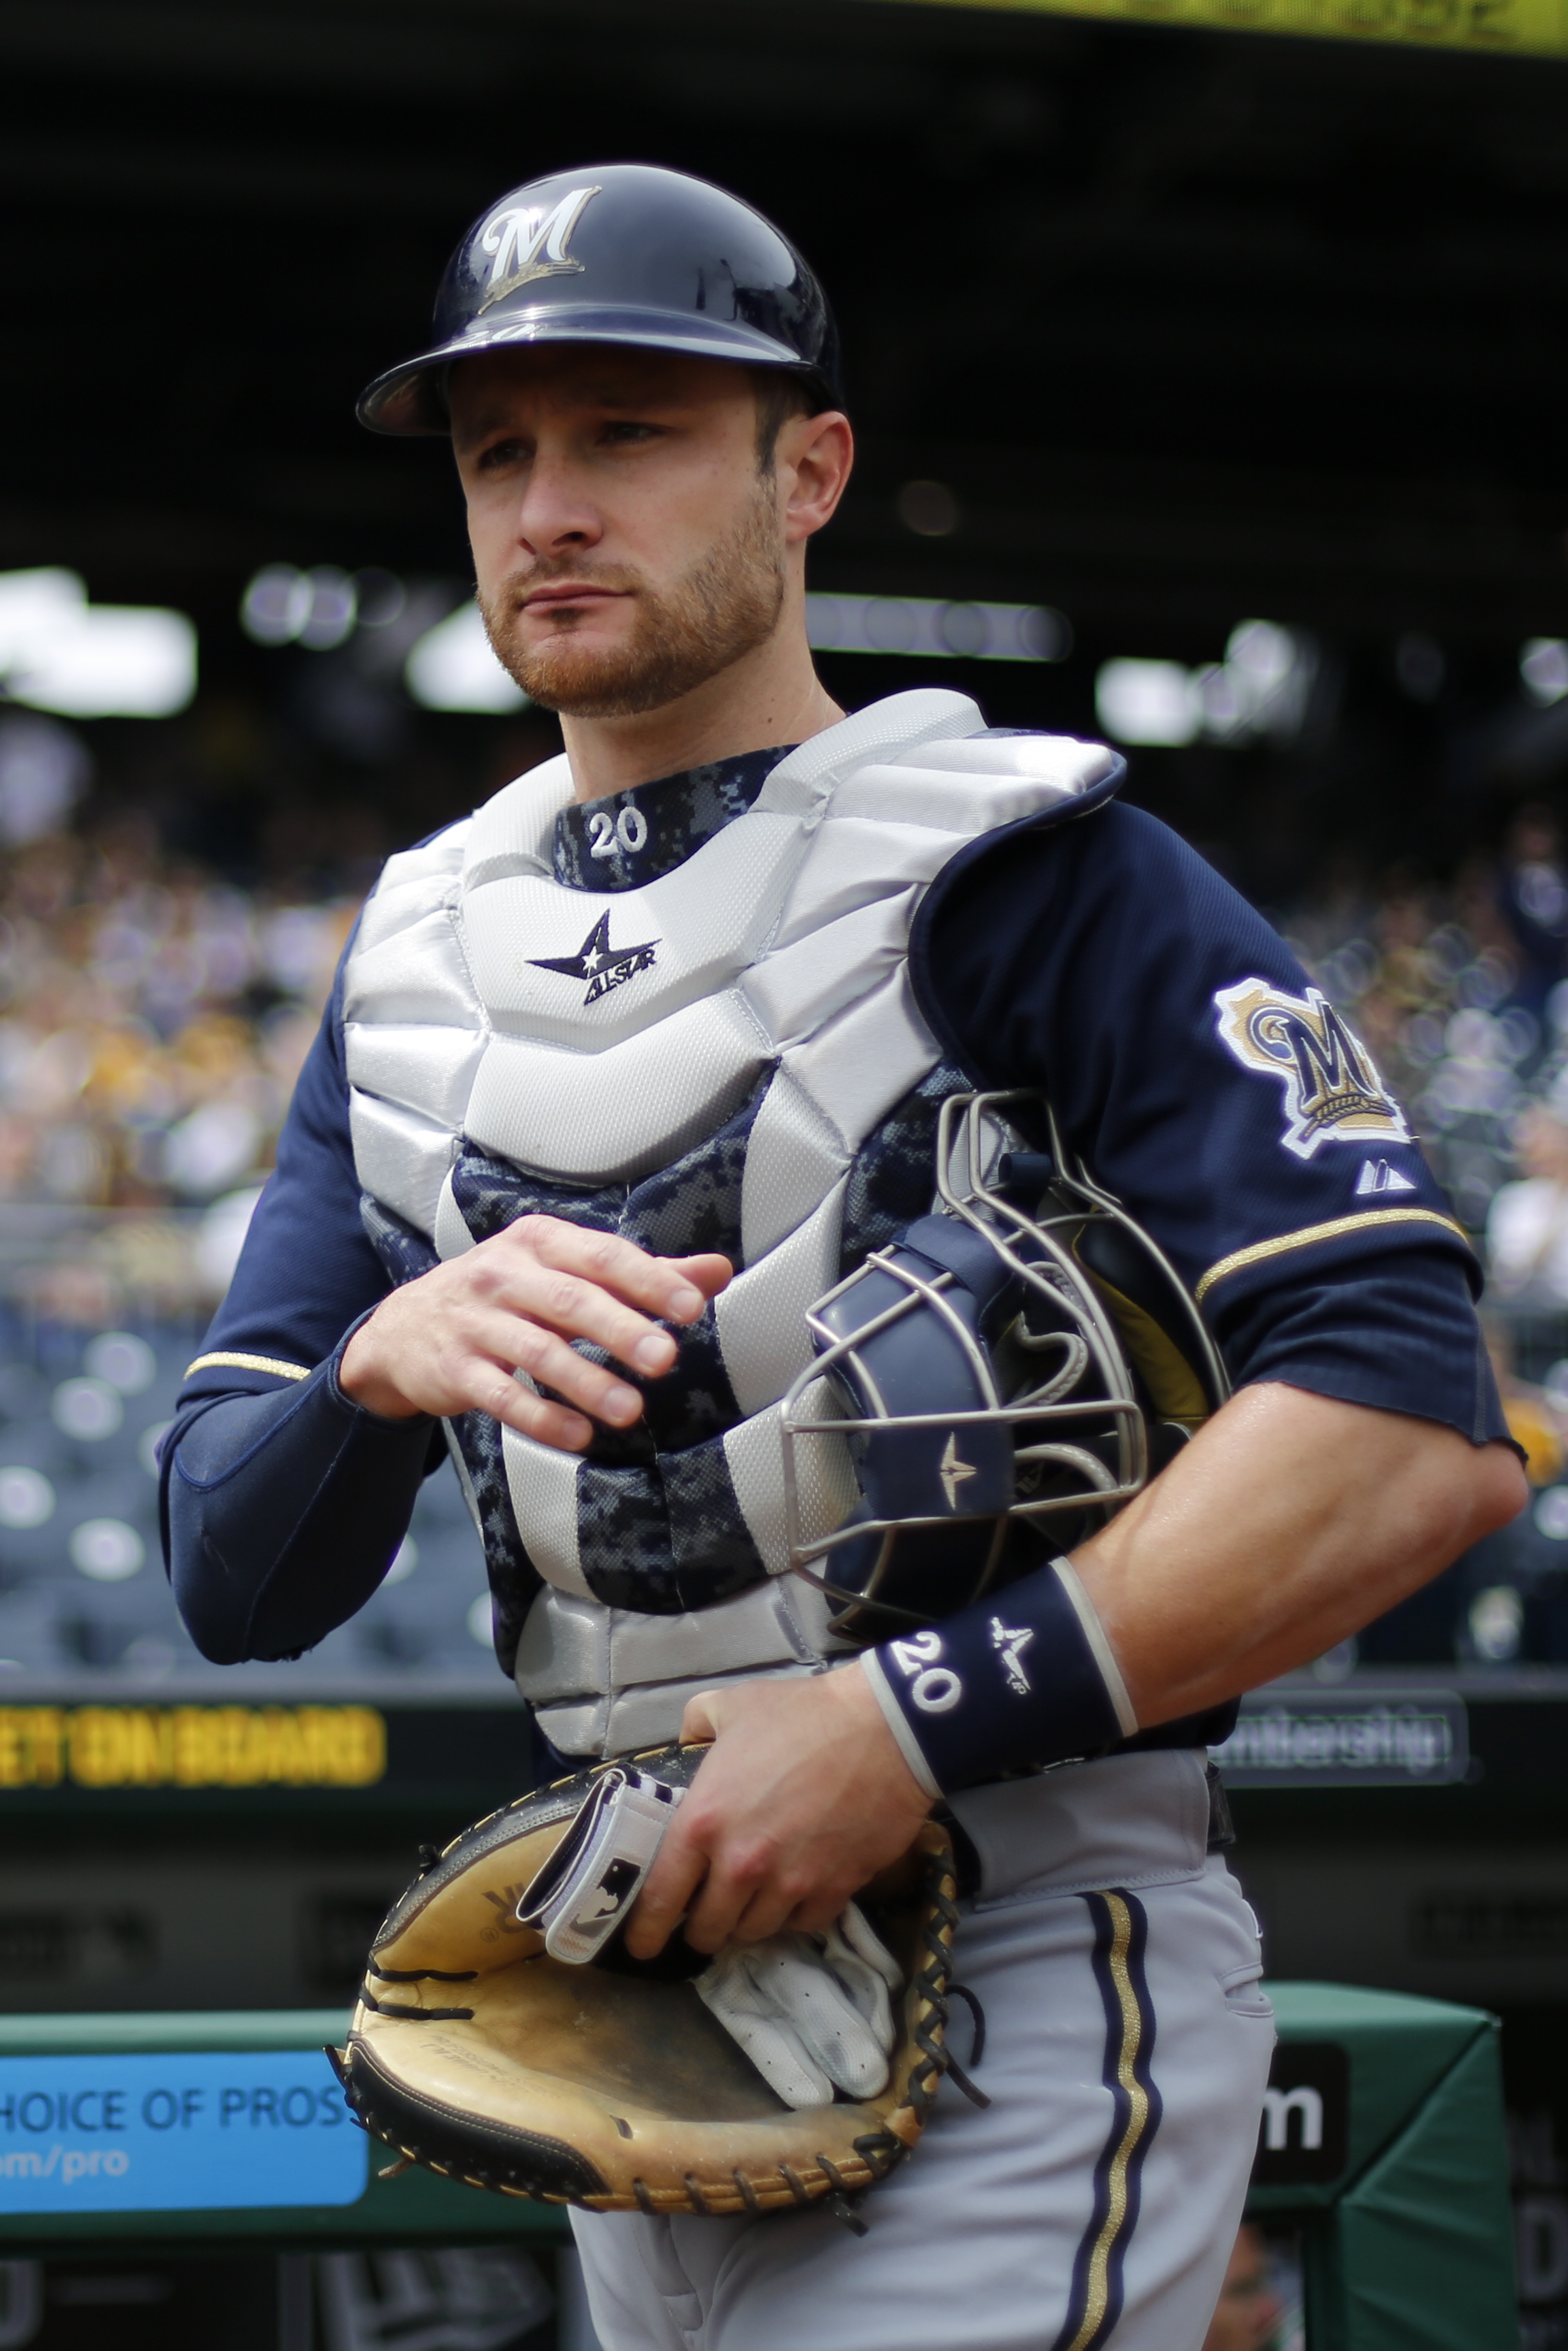 Milwaukee Brewers catcher Jonathan Lucroy heads to the bullpen to warm up pitcher starting pitcher Matt Garza before a baseball game against the Pittsburgh Pirates in Pittsburgh, Sunday, April 19, 2015. (AP Photo/Gene J. Puskar)